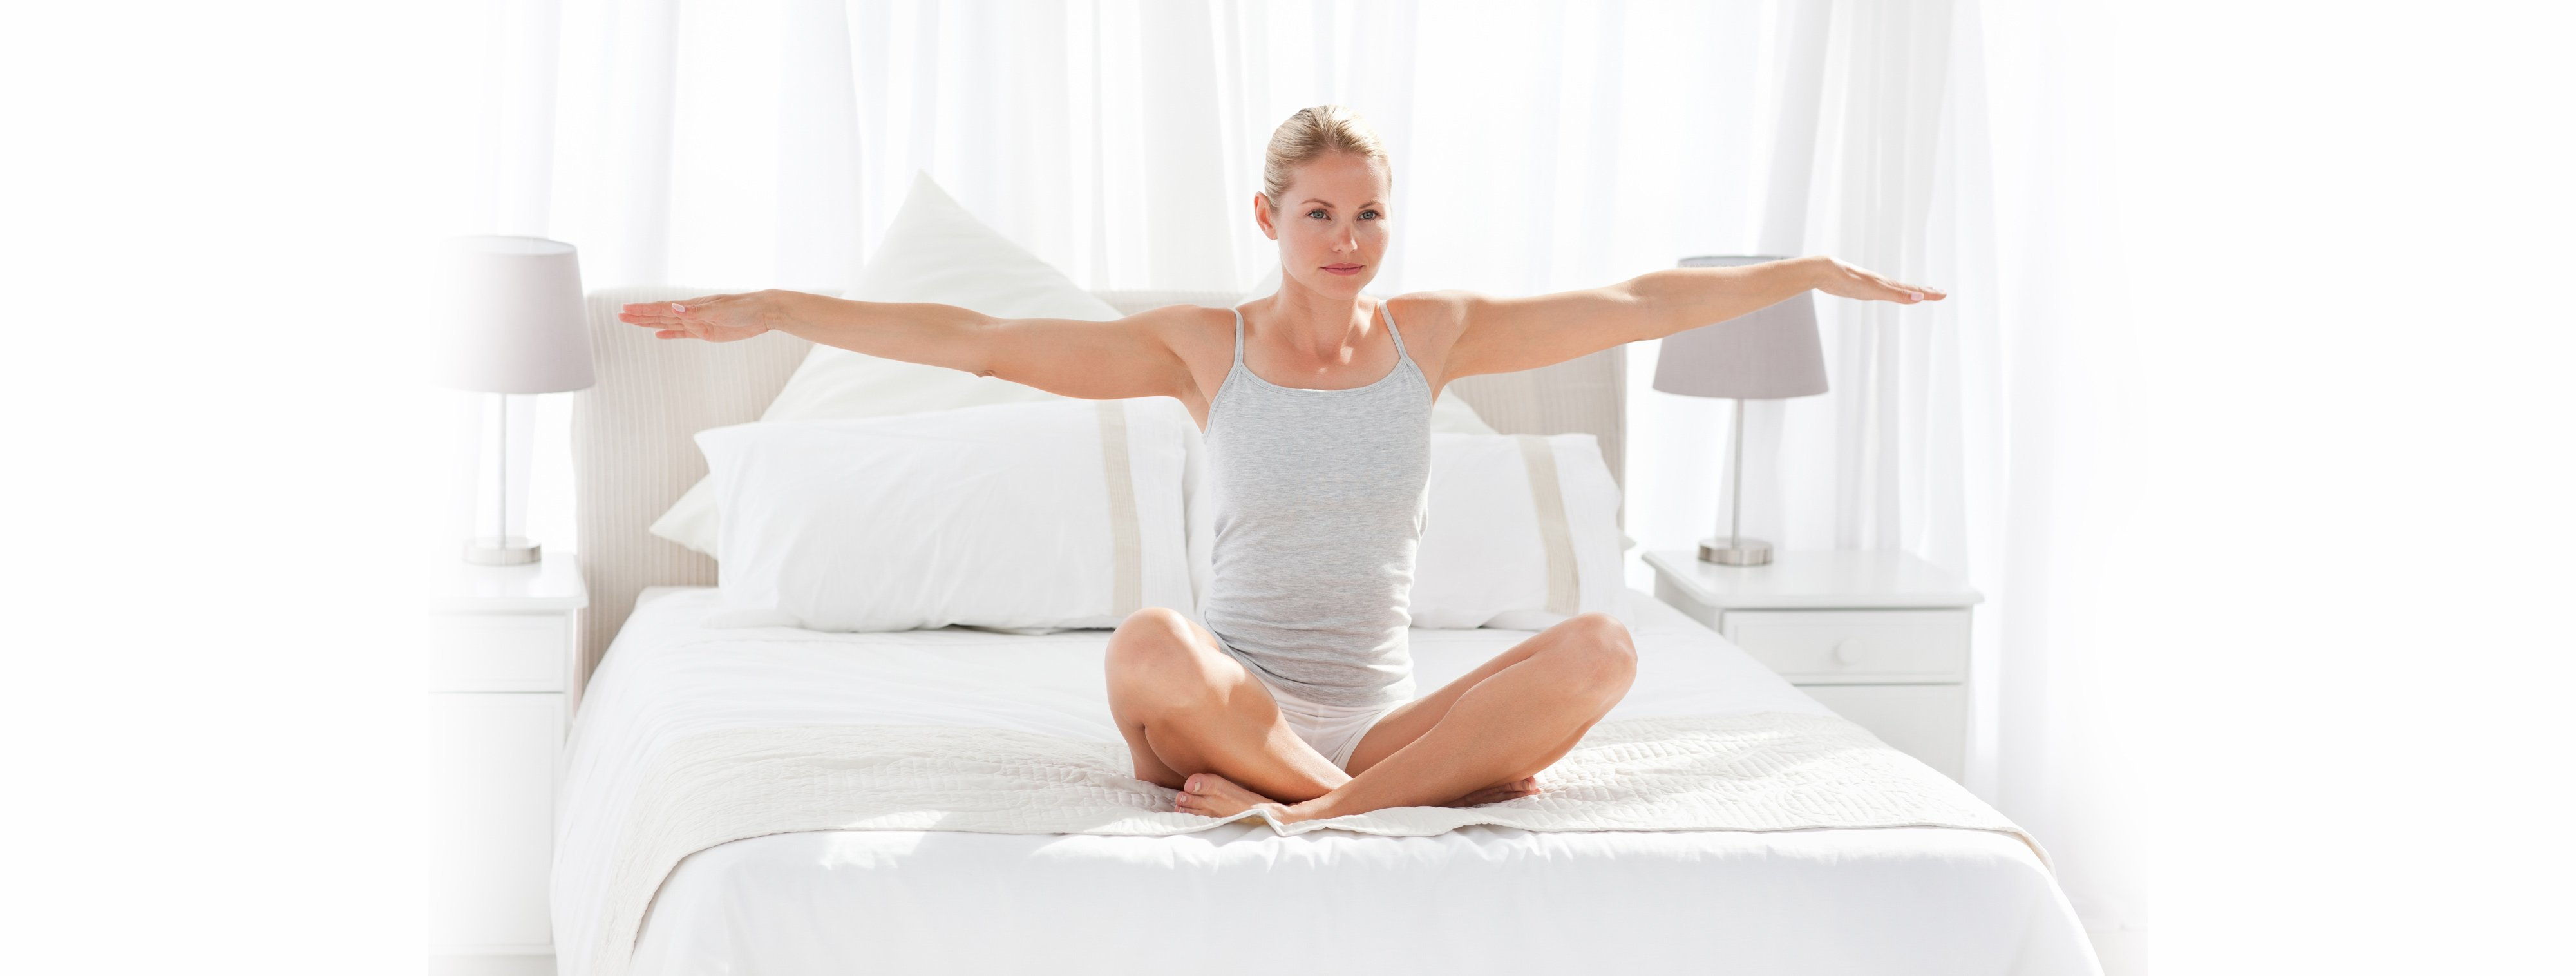 New Year, New You: Check Out These 4 Yoga Moves You Can Do in Bed